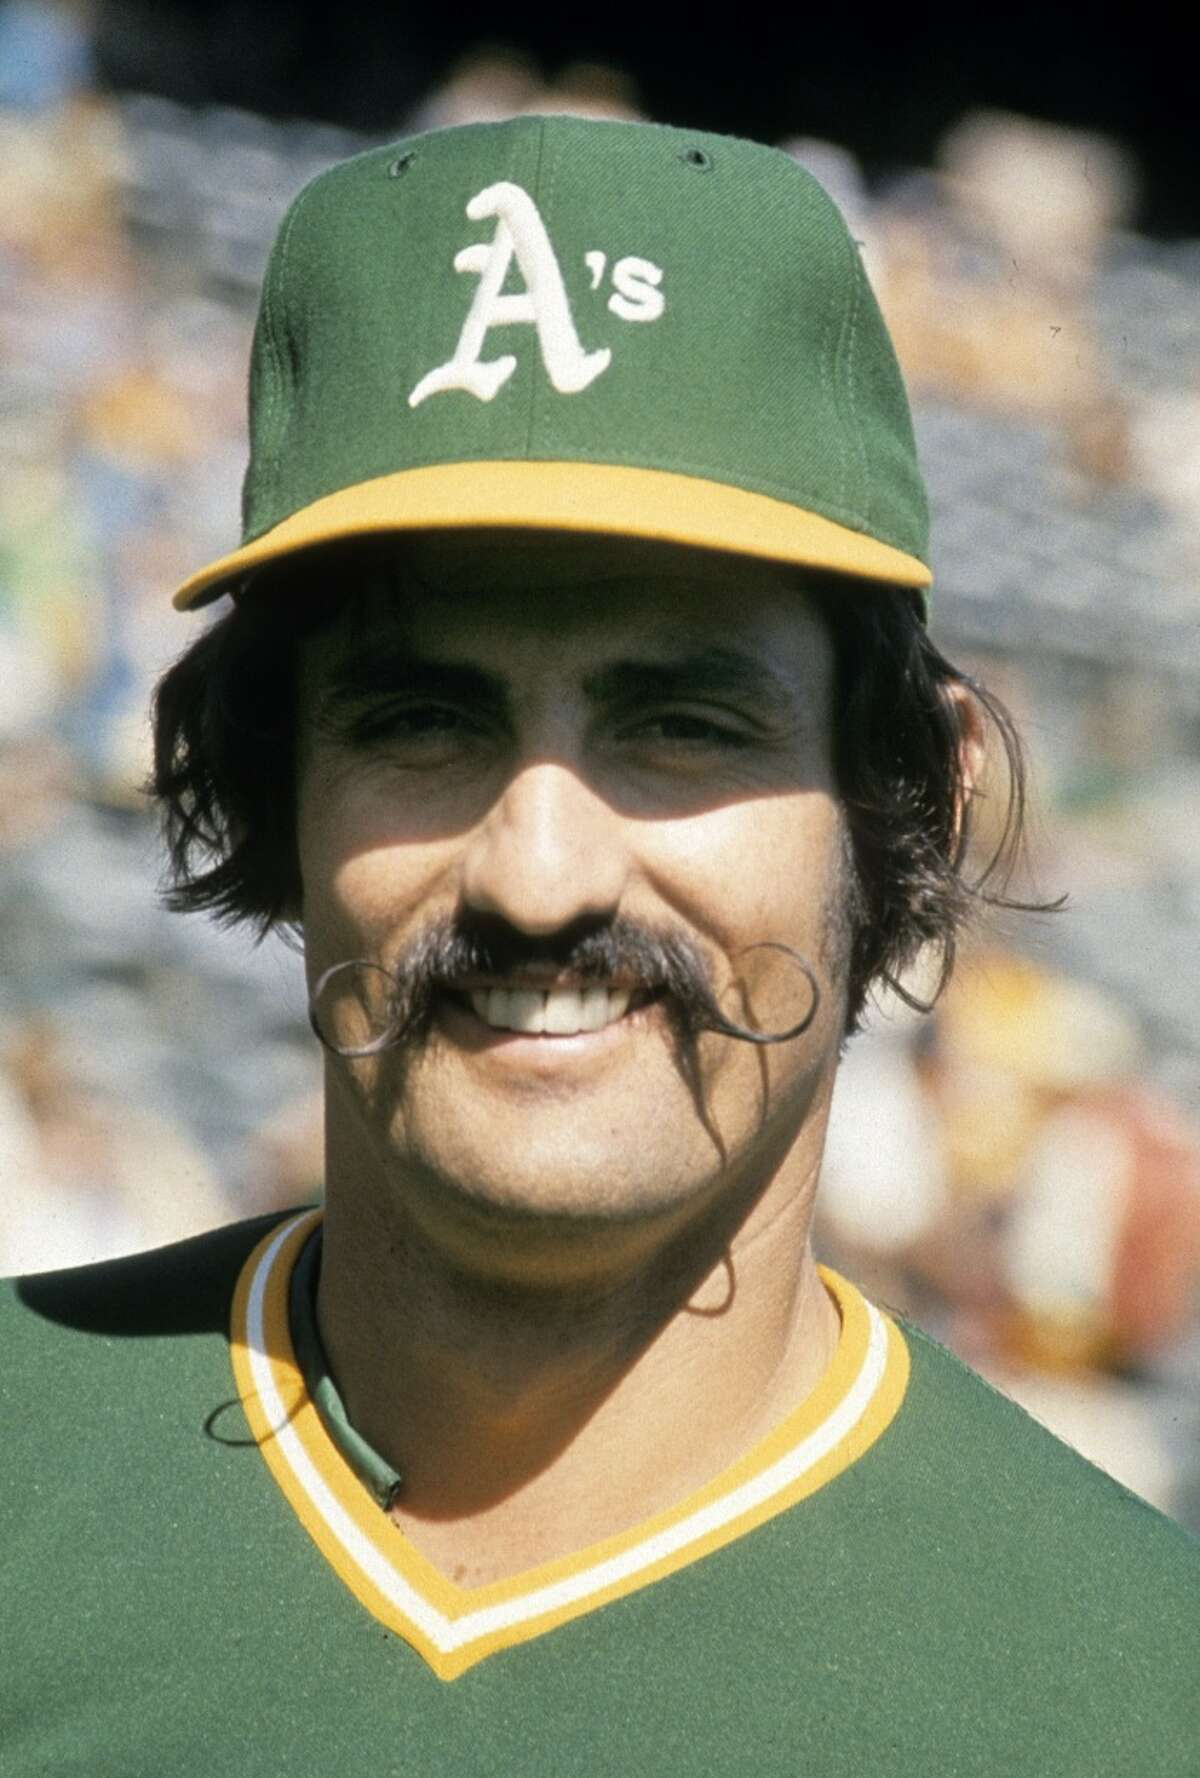 Rollie Fingers - The A's of the early 70s were filled with legendary personalities, but Rollie still has the best mustache in all of professional sports, bar none.